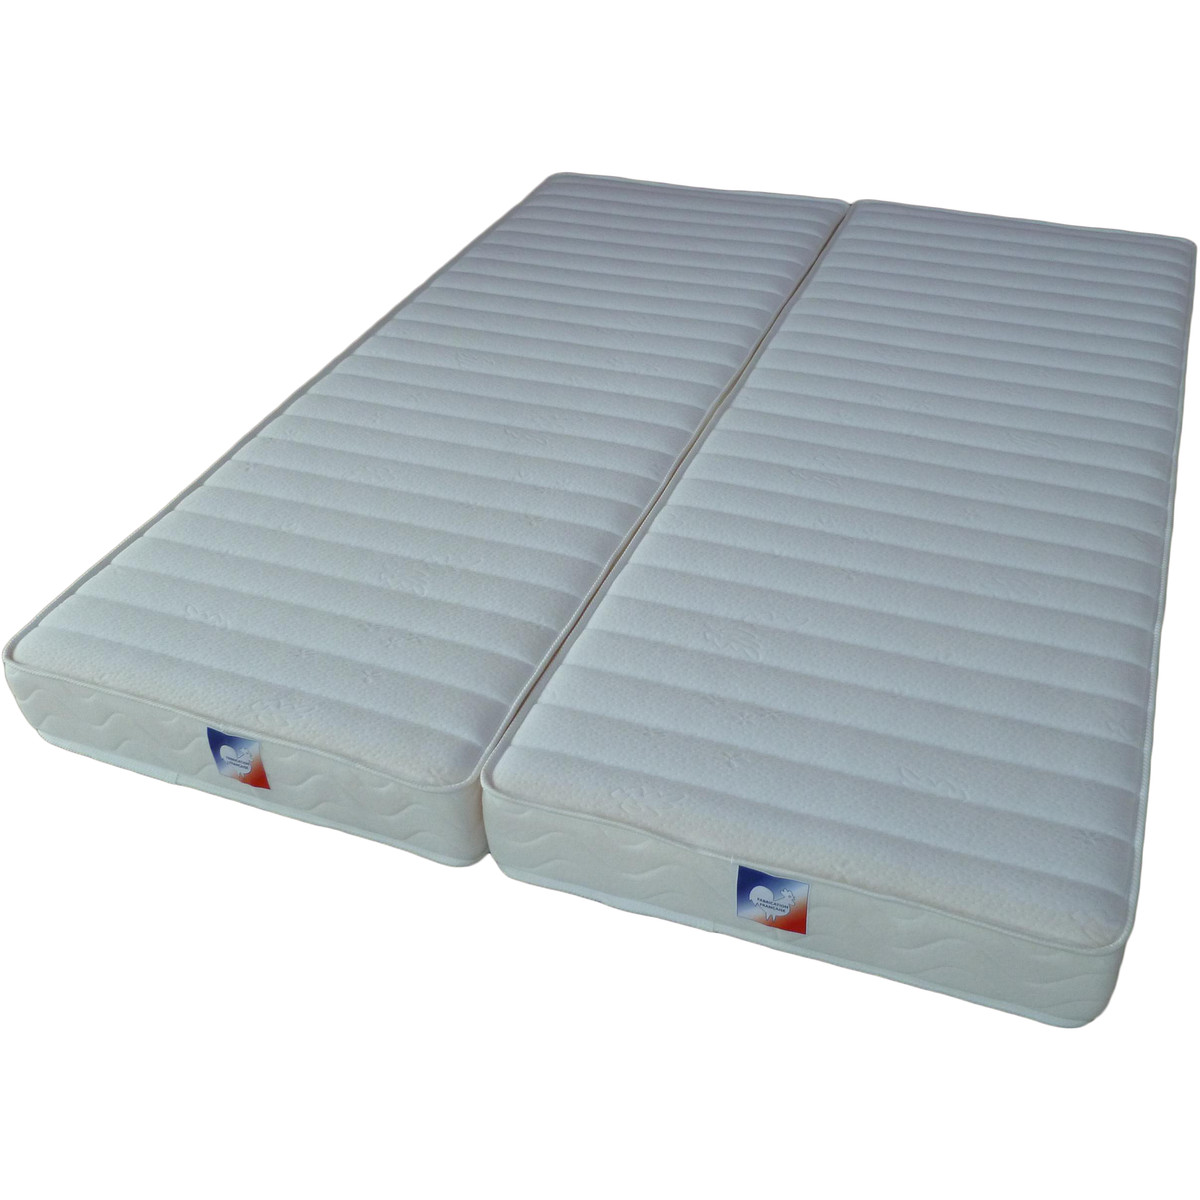 Ikea Matelas Latex 160x200 Matelas En Latex Topiwall